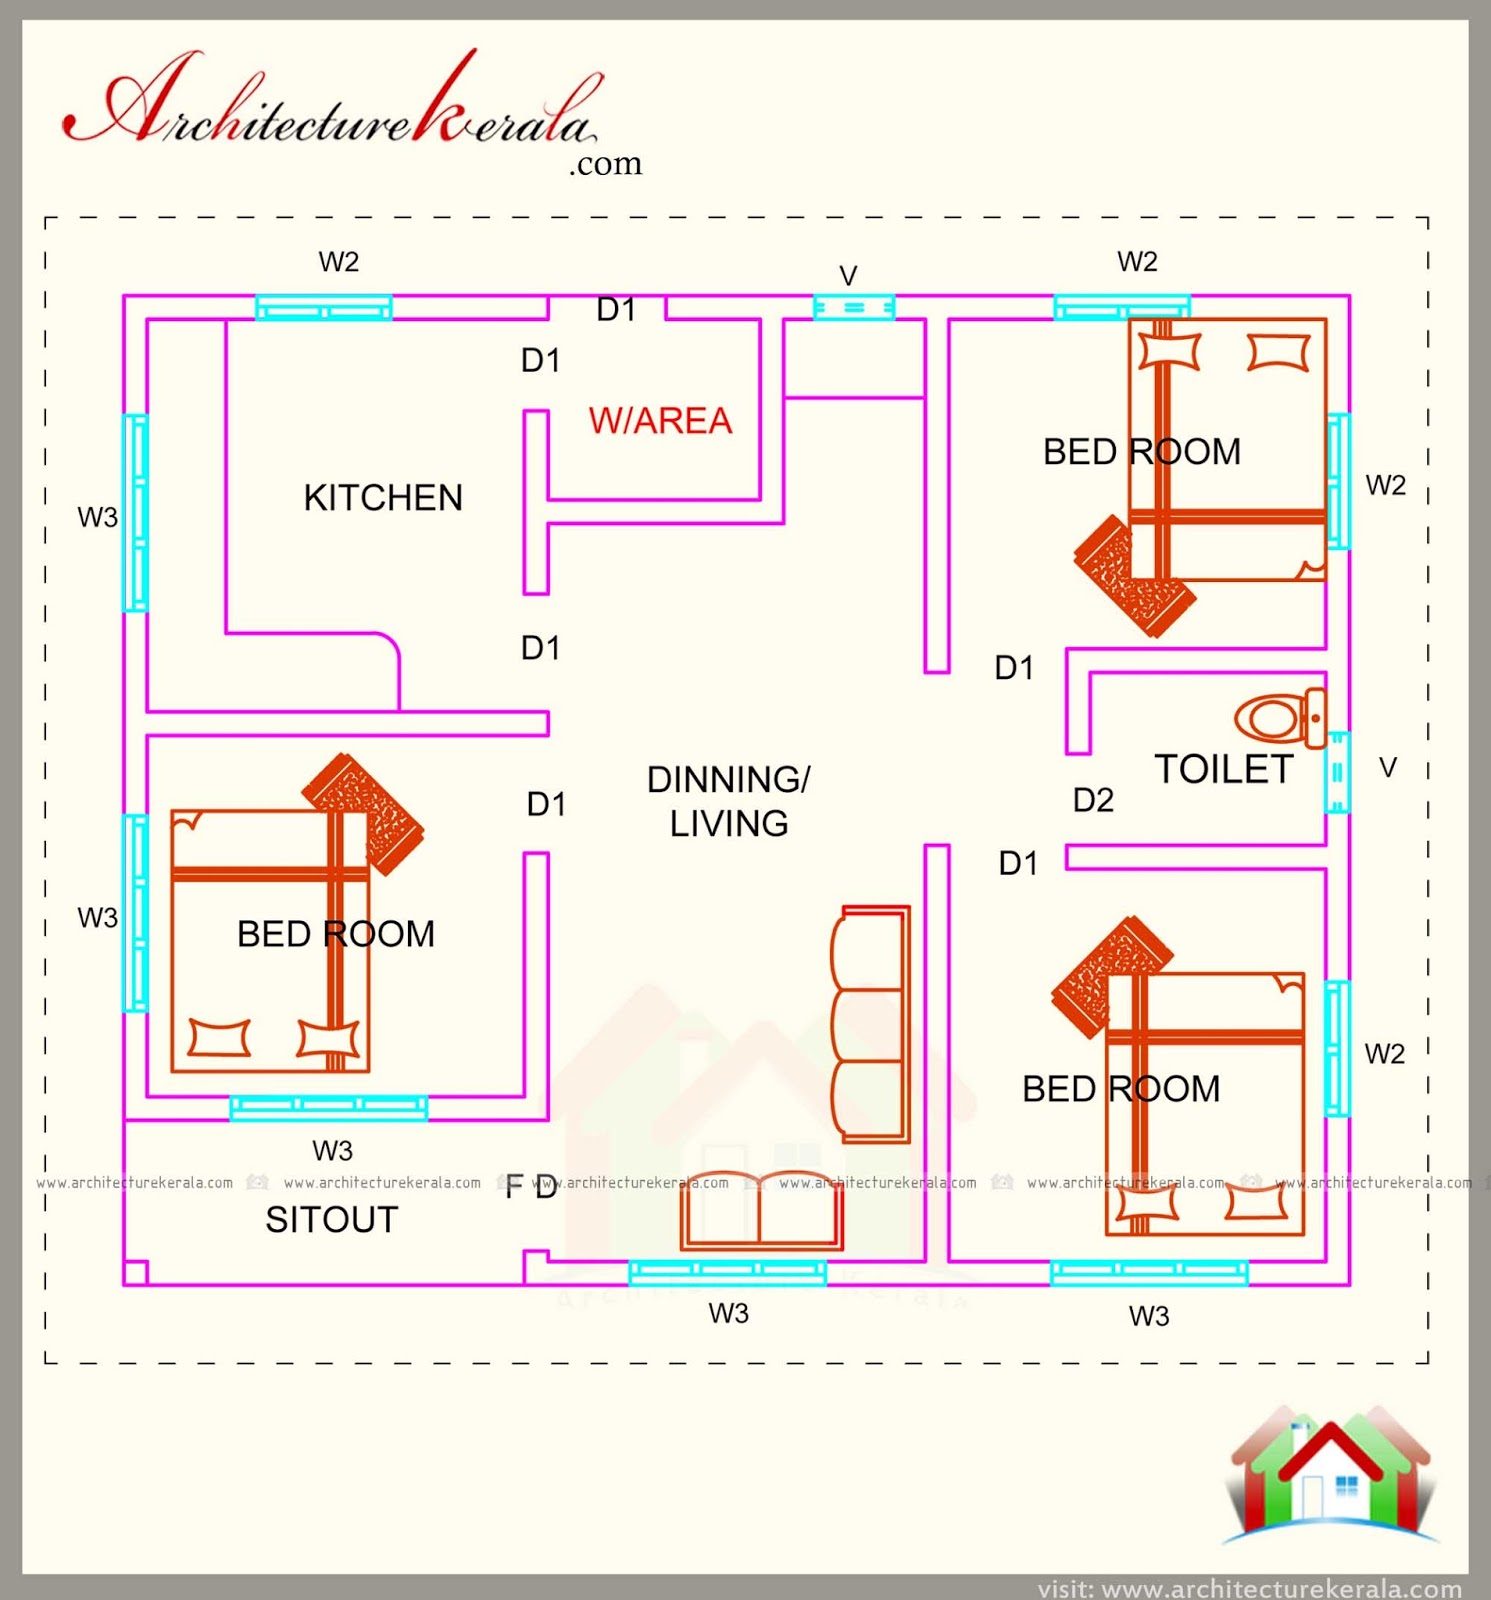 760 square feet 3 bedroom house plan architecture kerala for House plans in kerala with 2 bedrooms